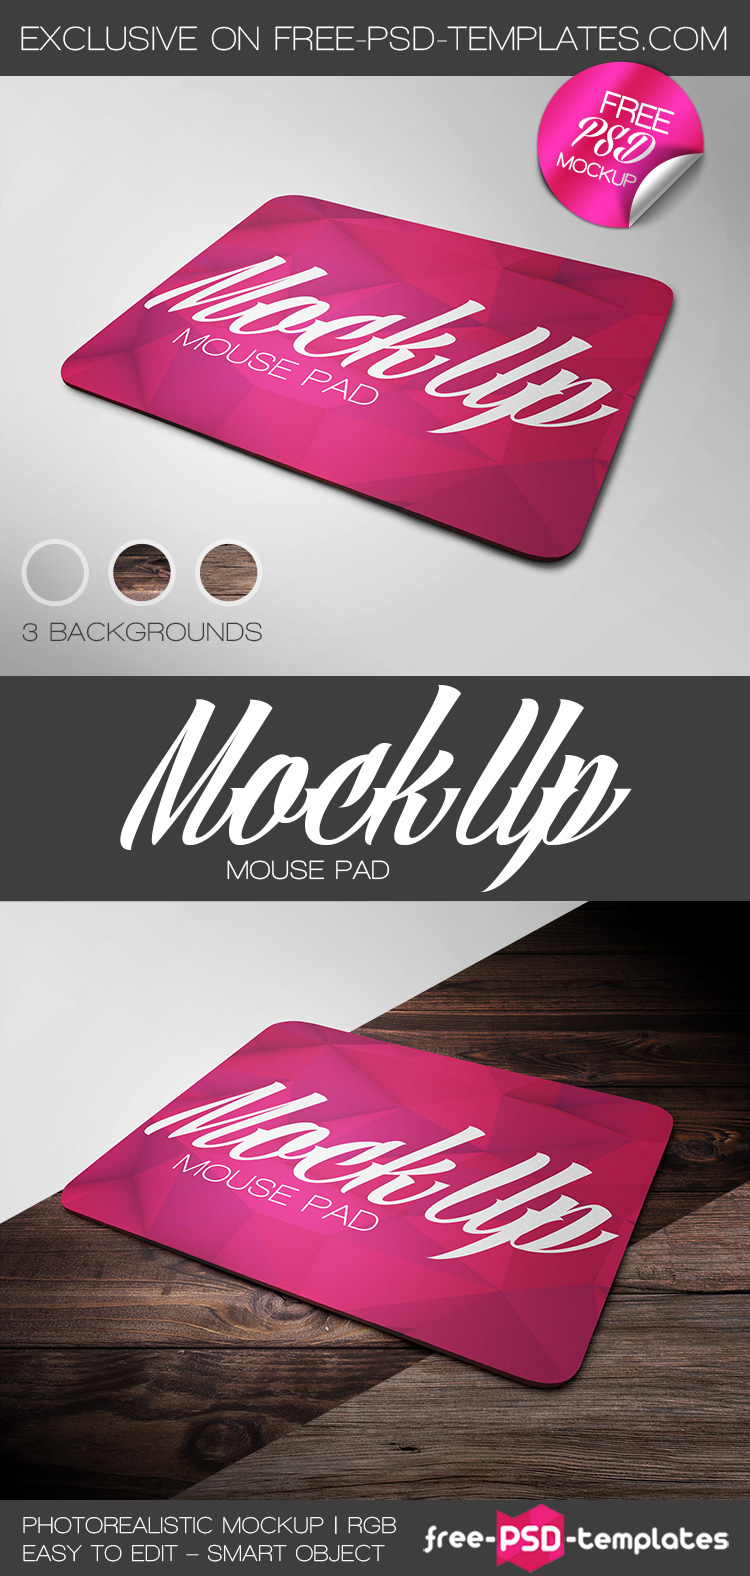 Free Mouse Pad Mock-up on Behance